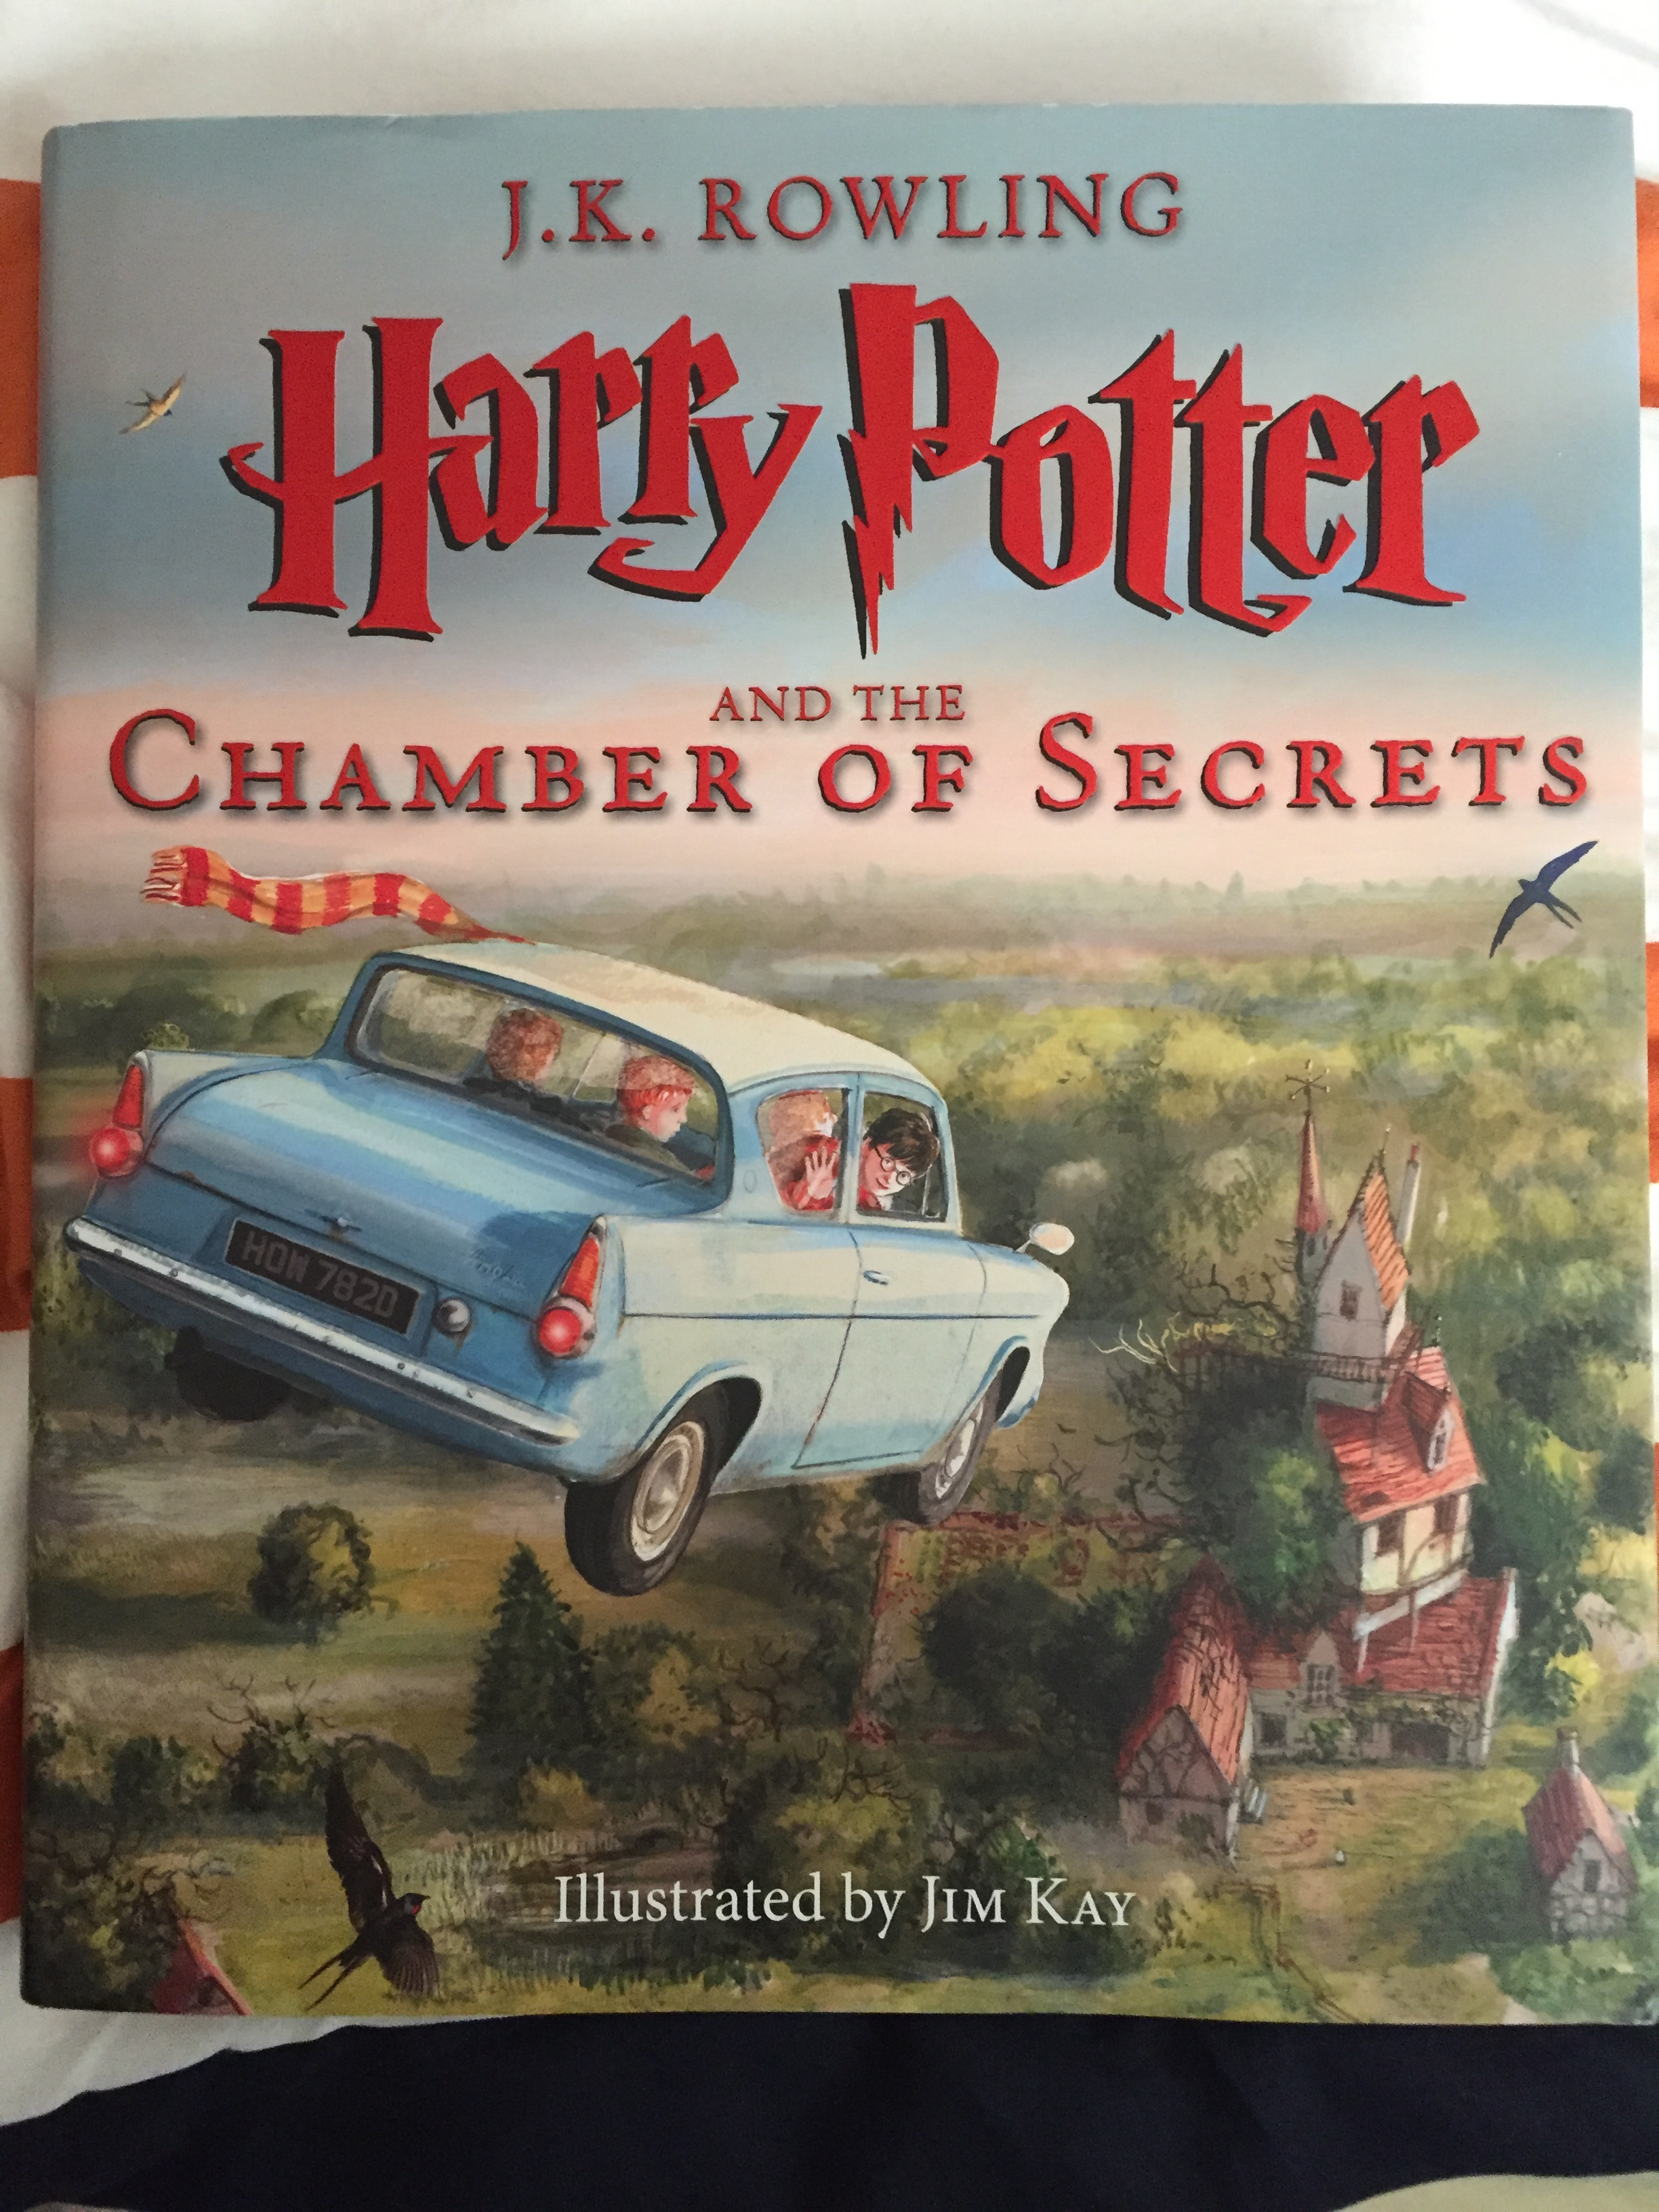 thesis statement for harry potter and the chamber of secrets Harry potter essay thesis  my book report is on harry potter and the chamber of secrets by j weak  thesis statement for harry potter and the deathly.